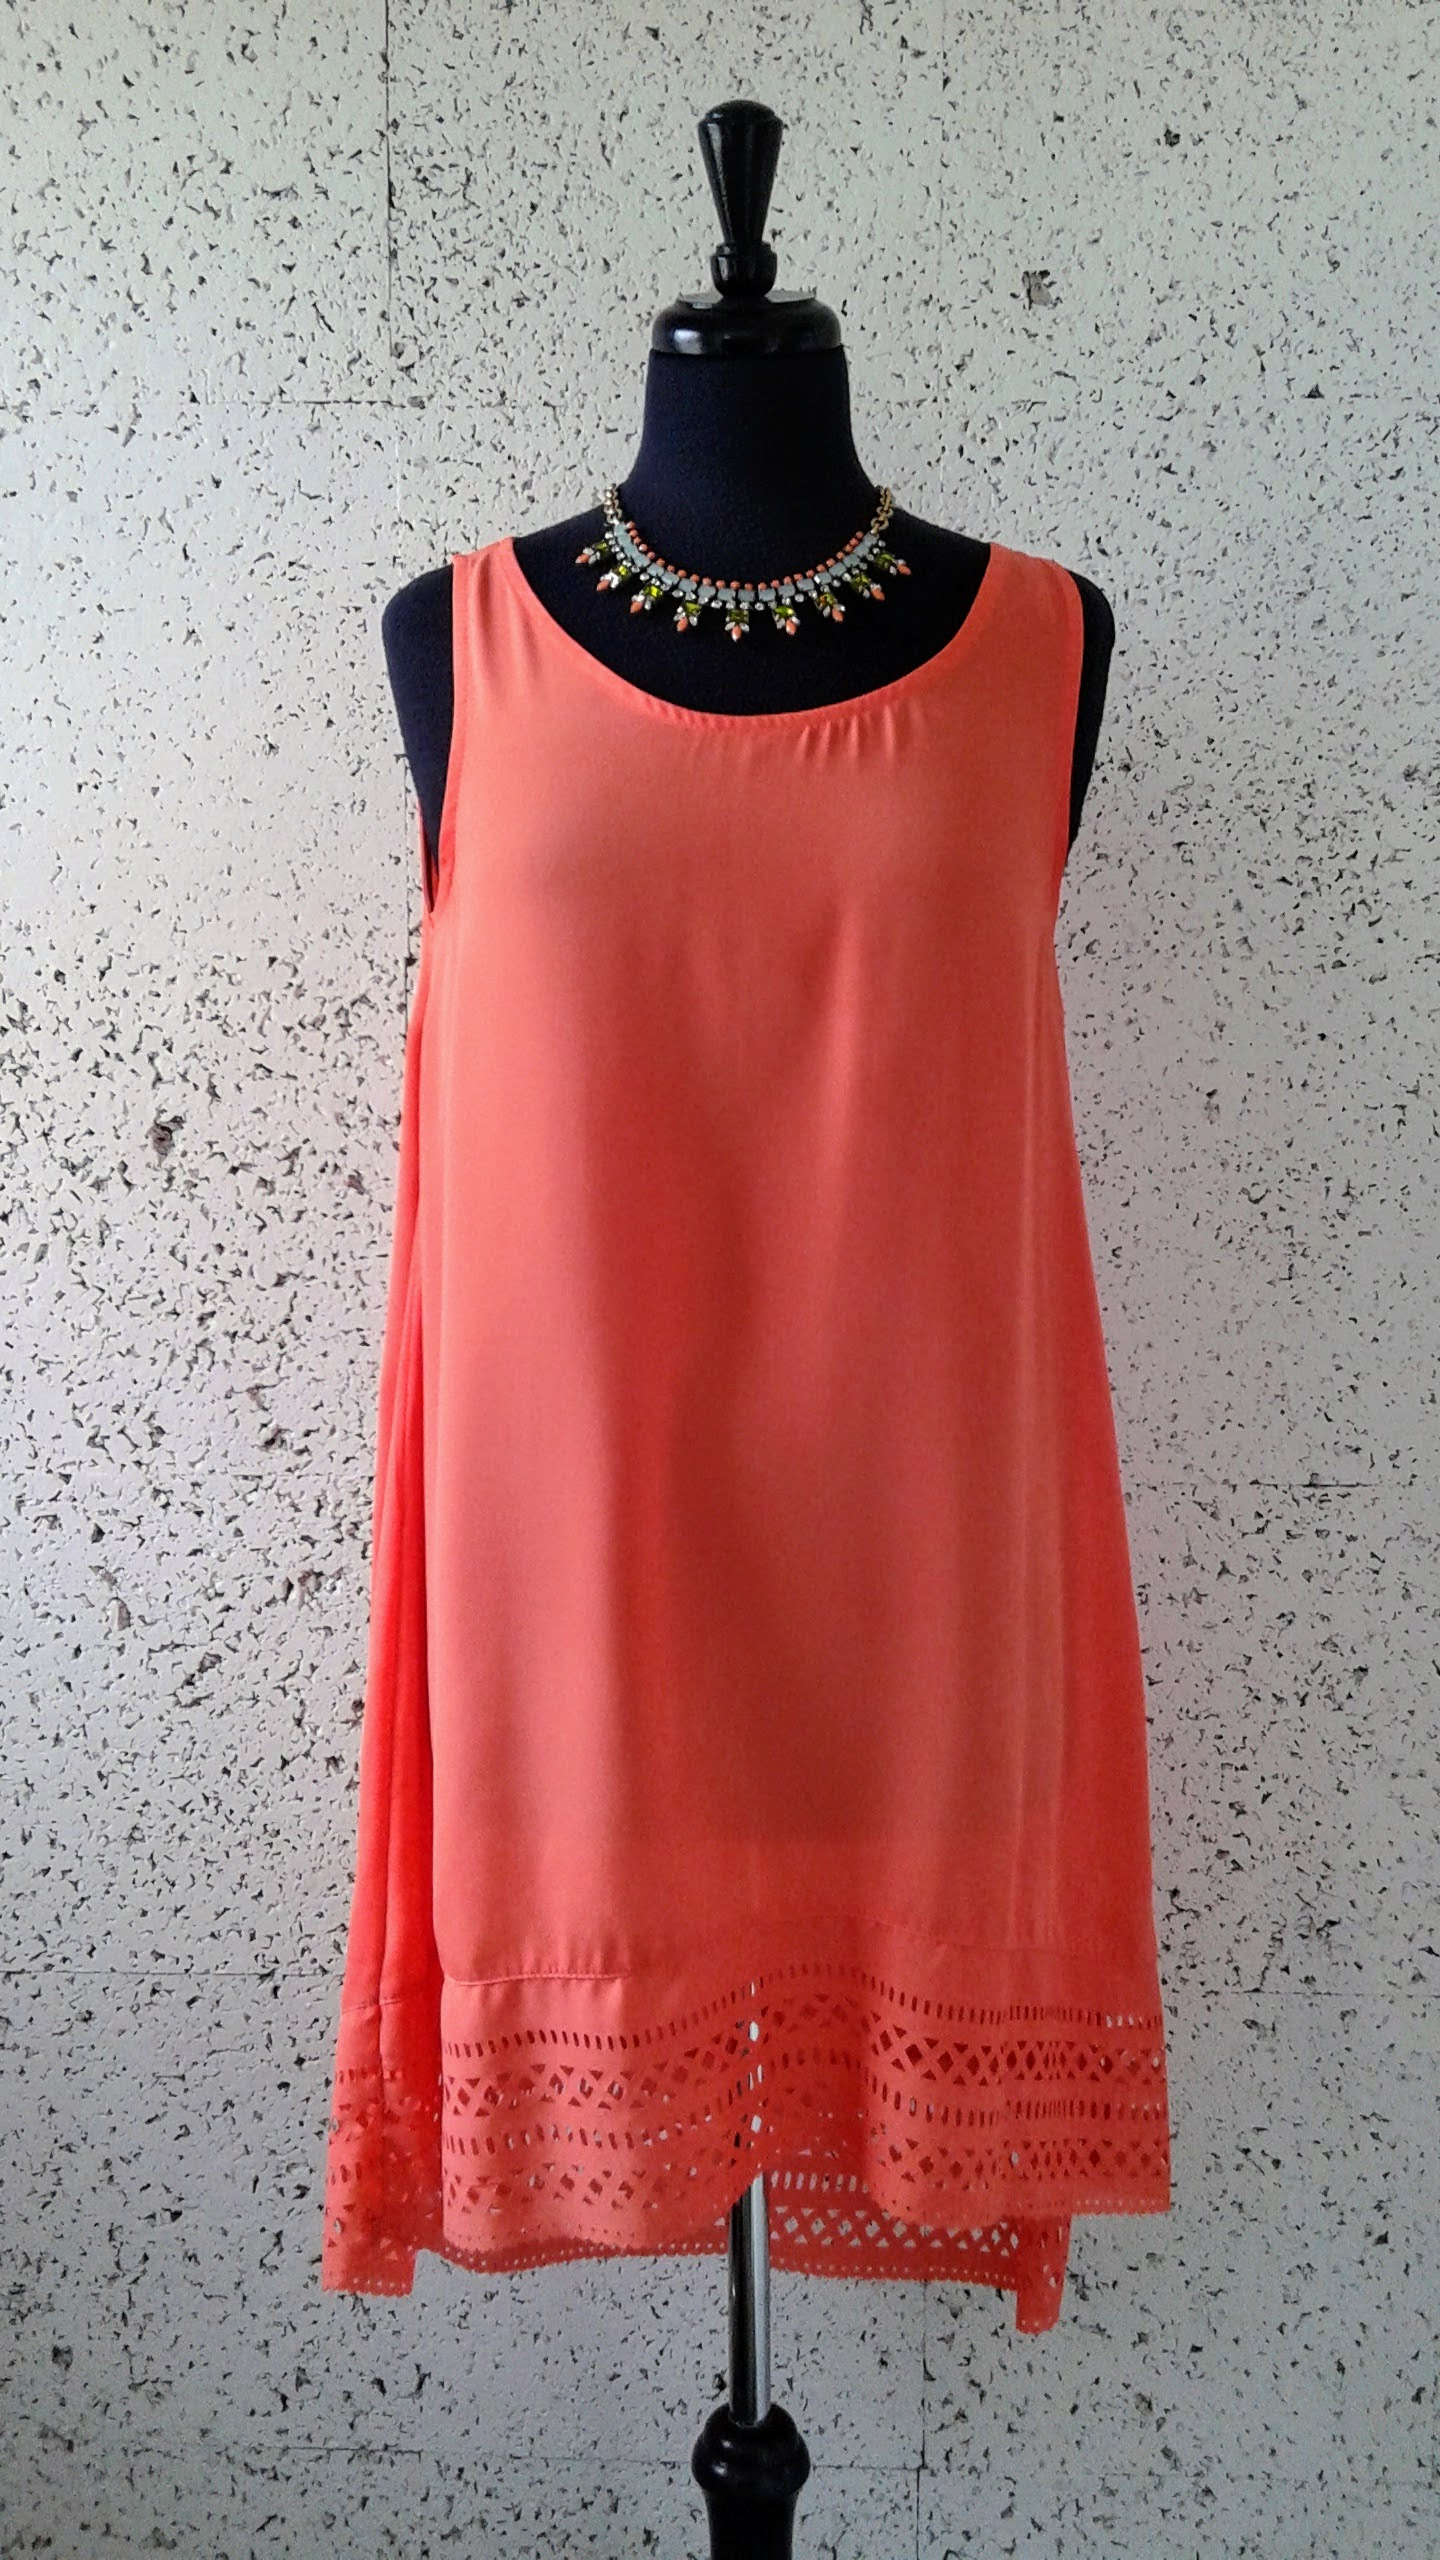 Oak+Fort dress; Size S, $48. J Crew necklace, $32